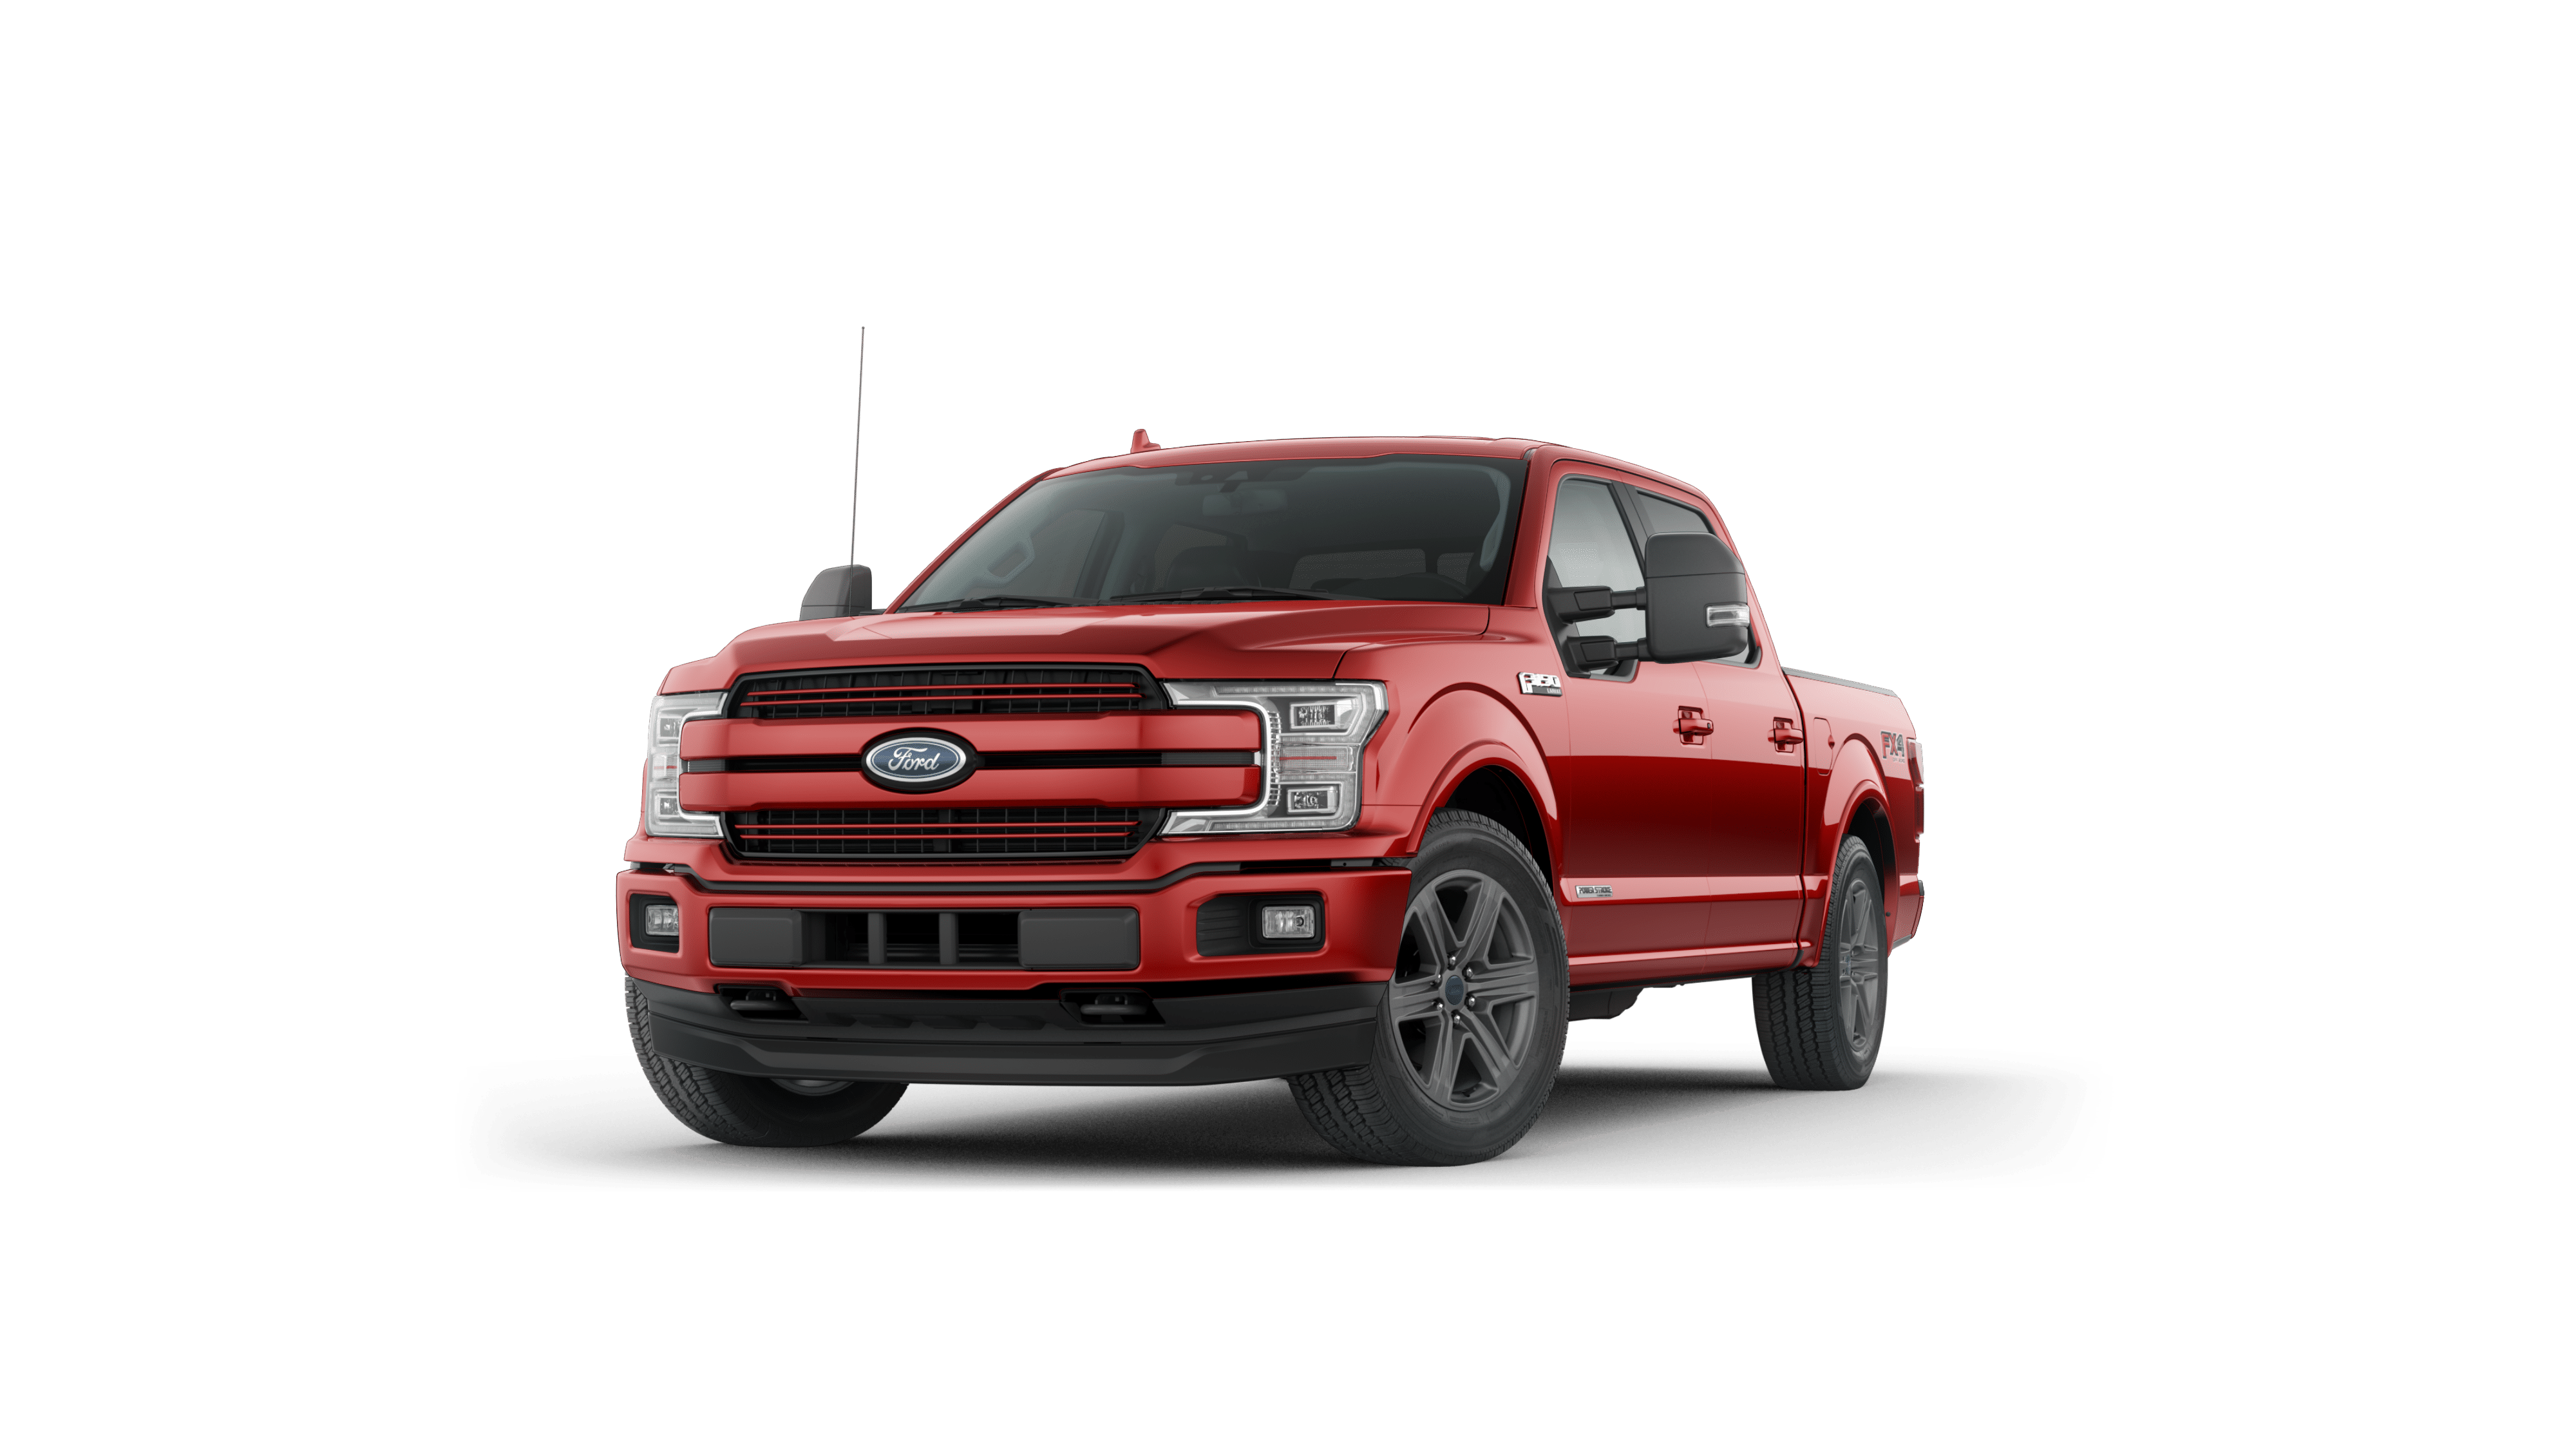 2018 Ford F 150 For Sale In Plainfield 1ftfw1e15jfd94318 Rod Security Systems Baker Sales Inc